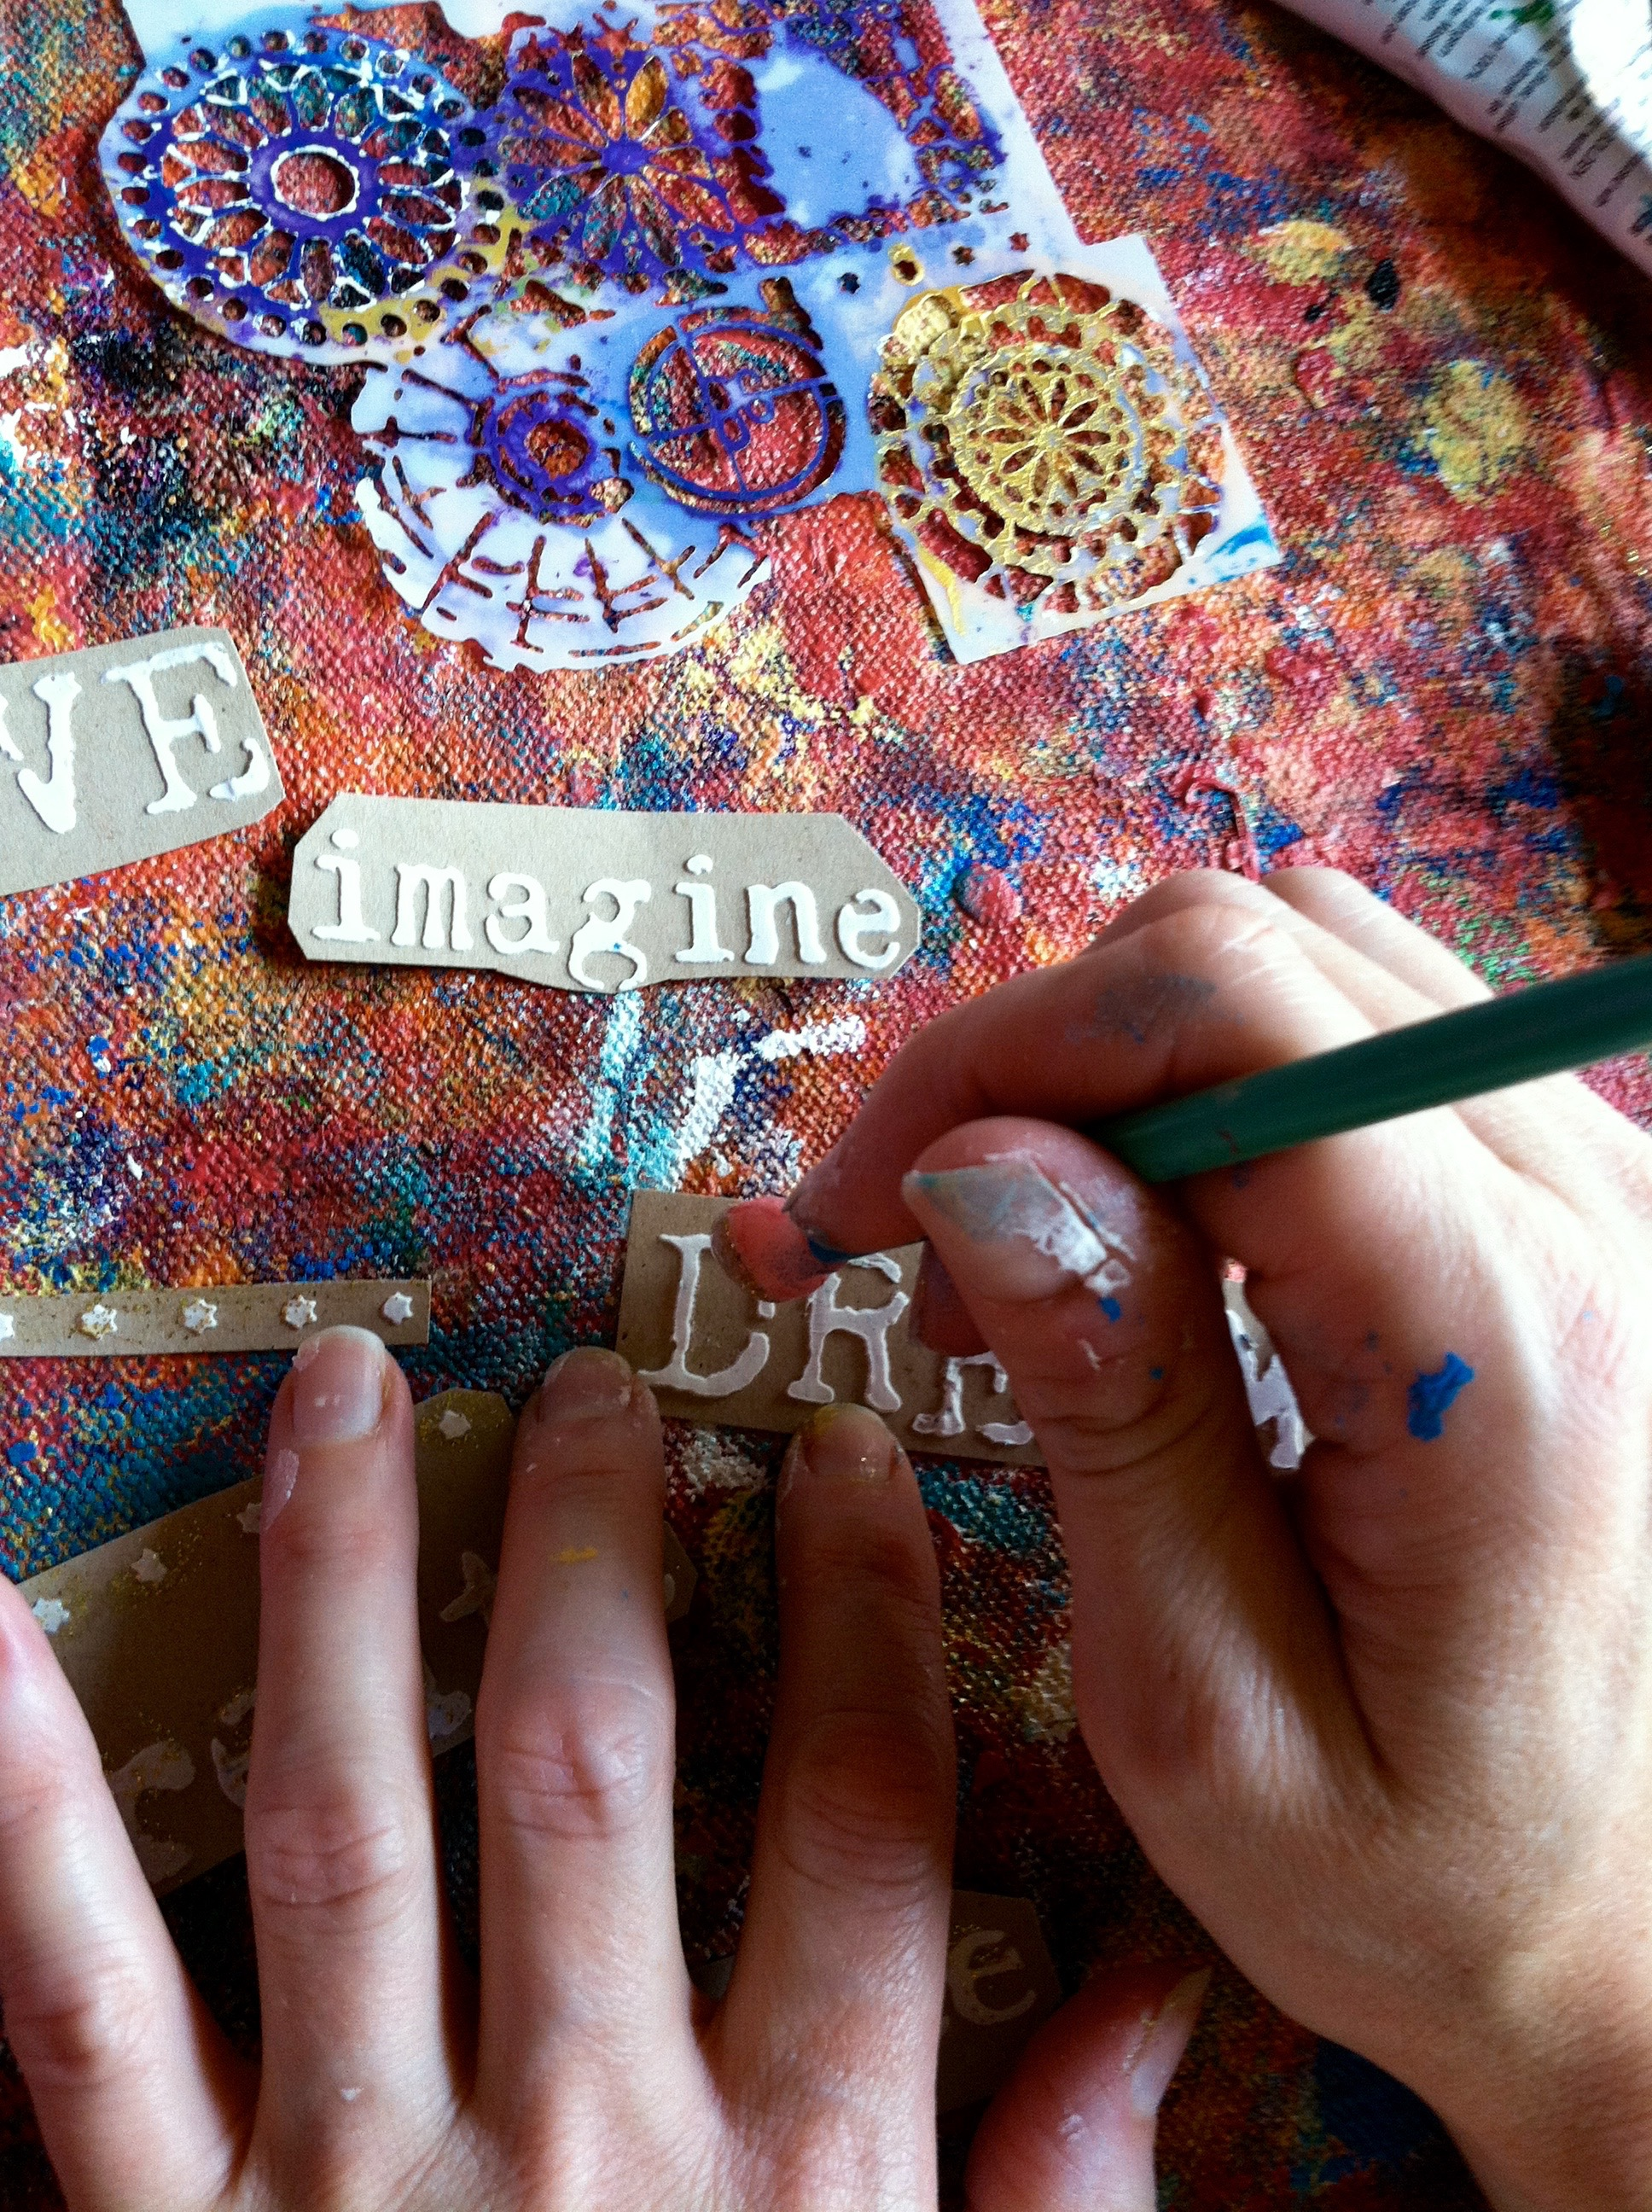 Adding glitter paint to words